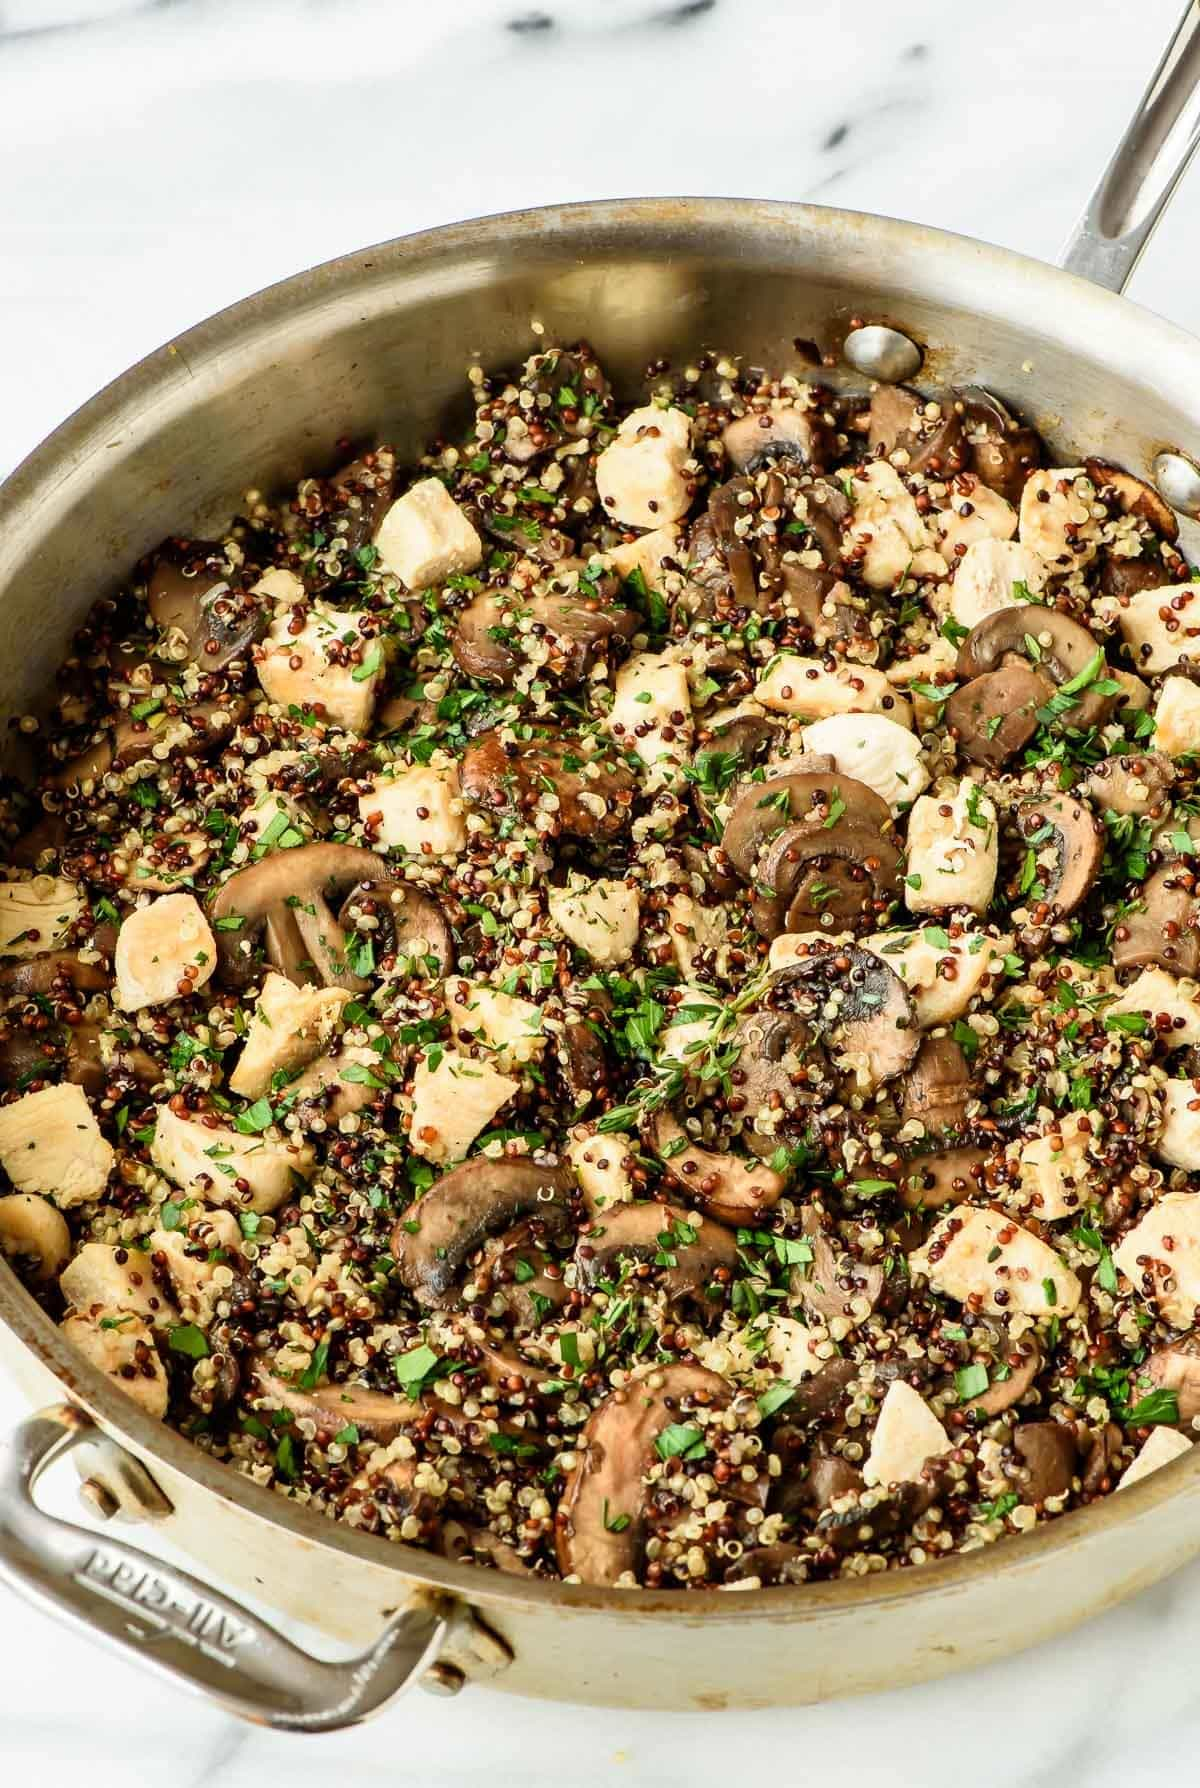 Skillet Mushroom Chicken and Quinoa - This easy weeknight meal is light, healthy and will be a HUGE hit with your family! Ready in 30 minutes.